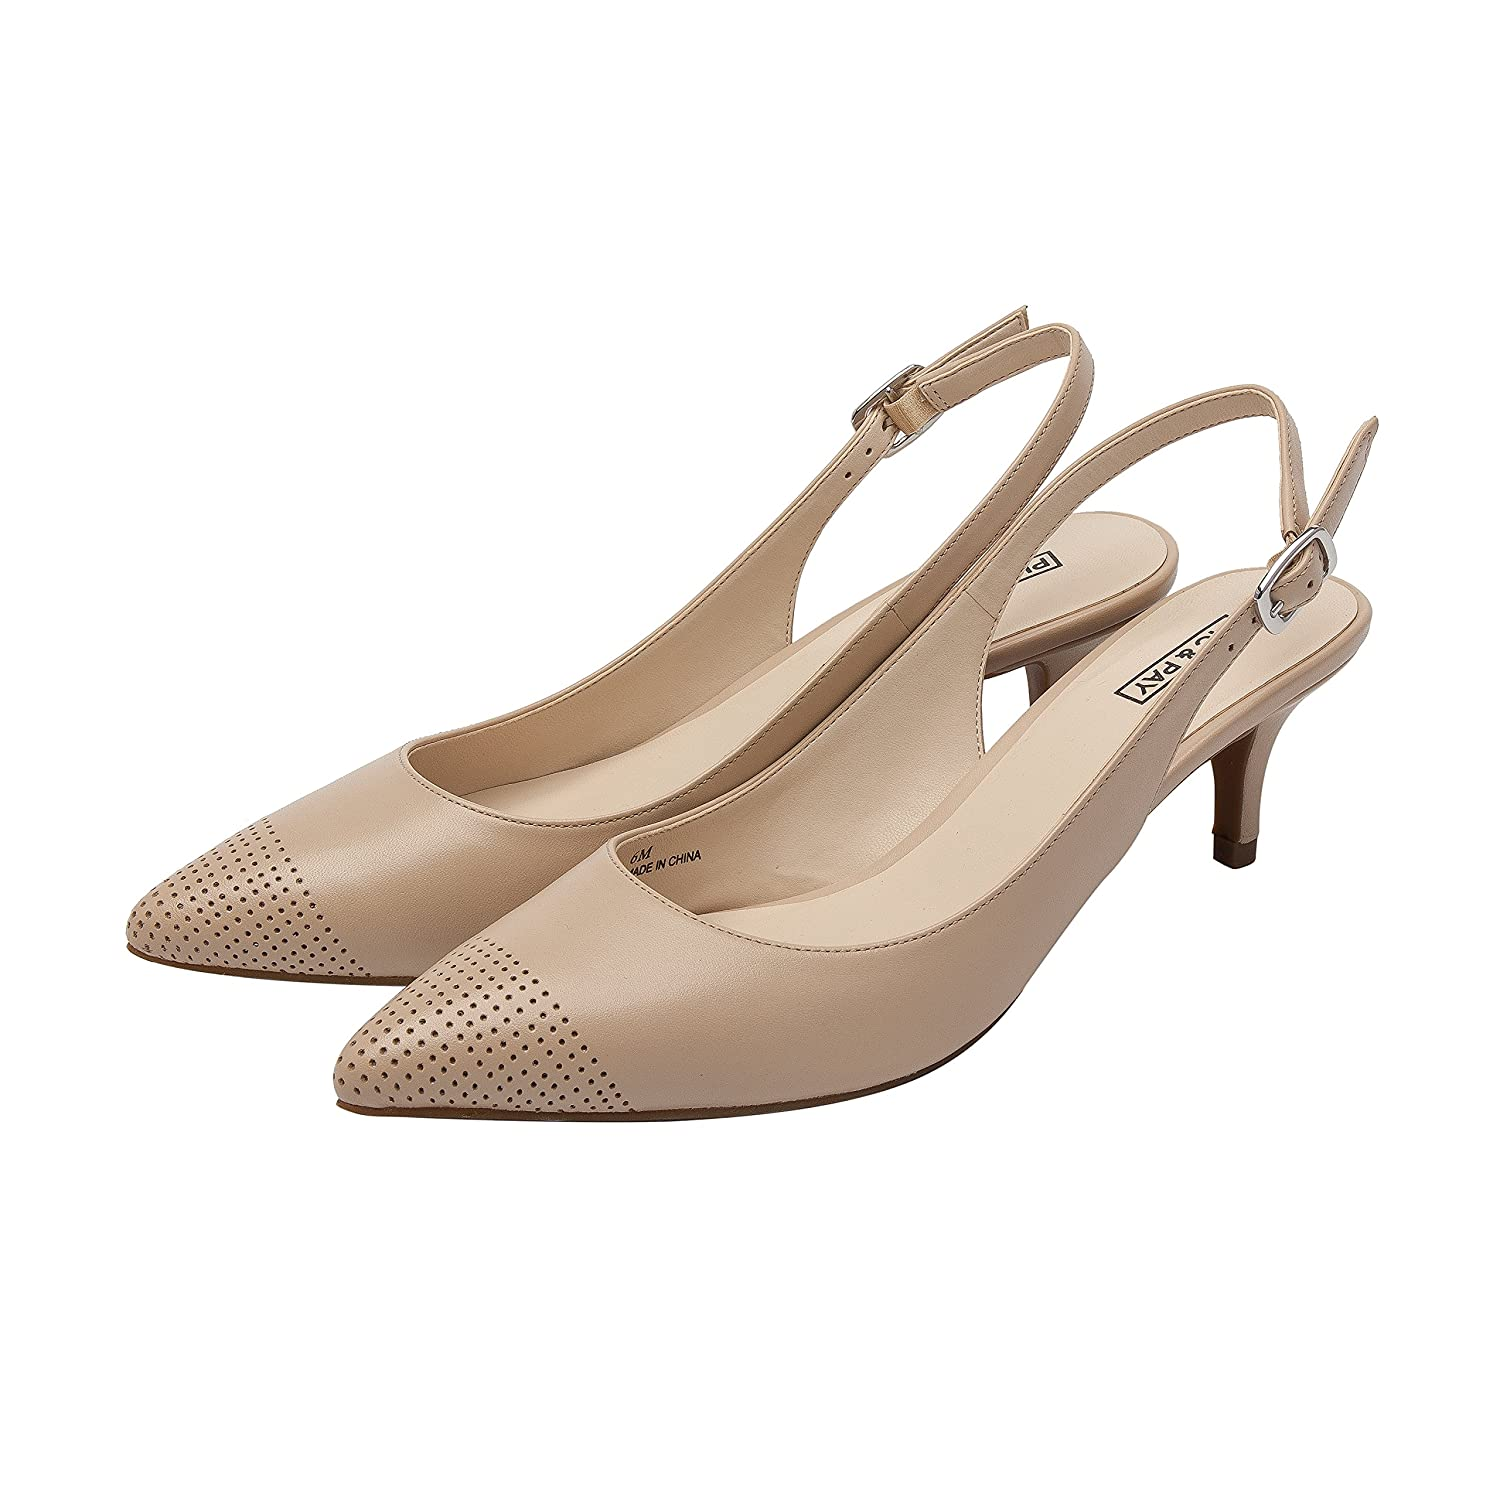 Hazel | Women's Low Heel Perforated Cap Toe Comfortable Slingback Pump B00G3EMLYU 11 B(M) US|Nude Leather